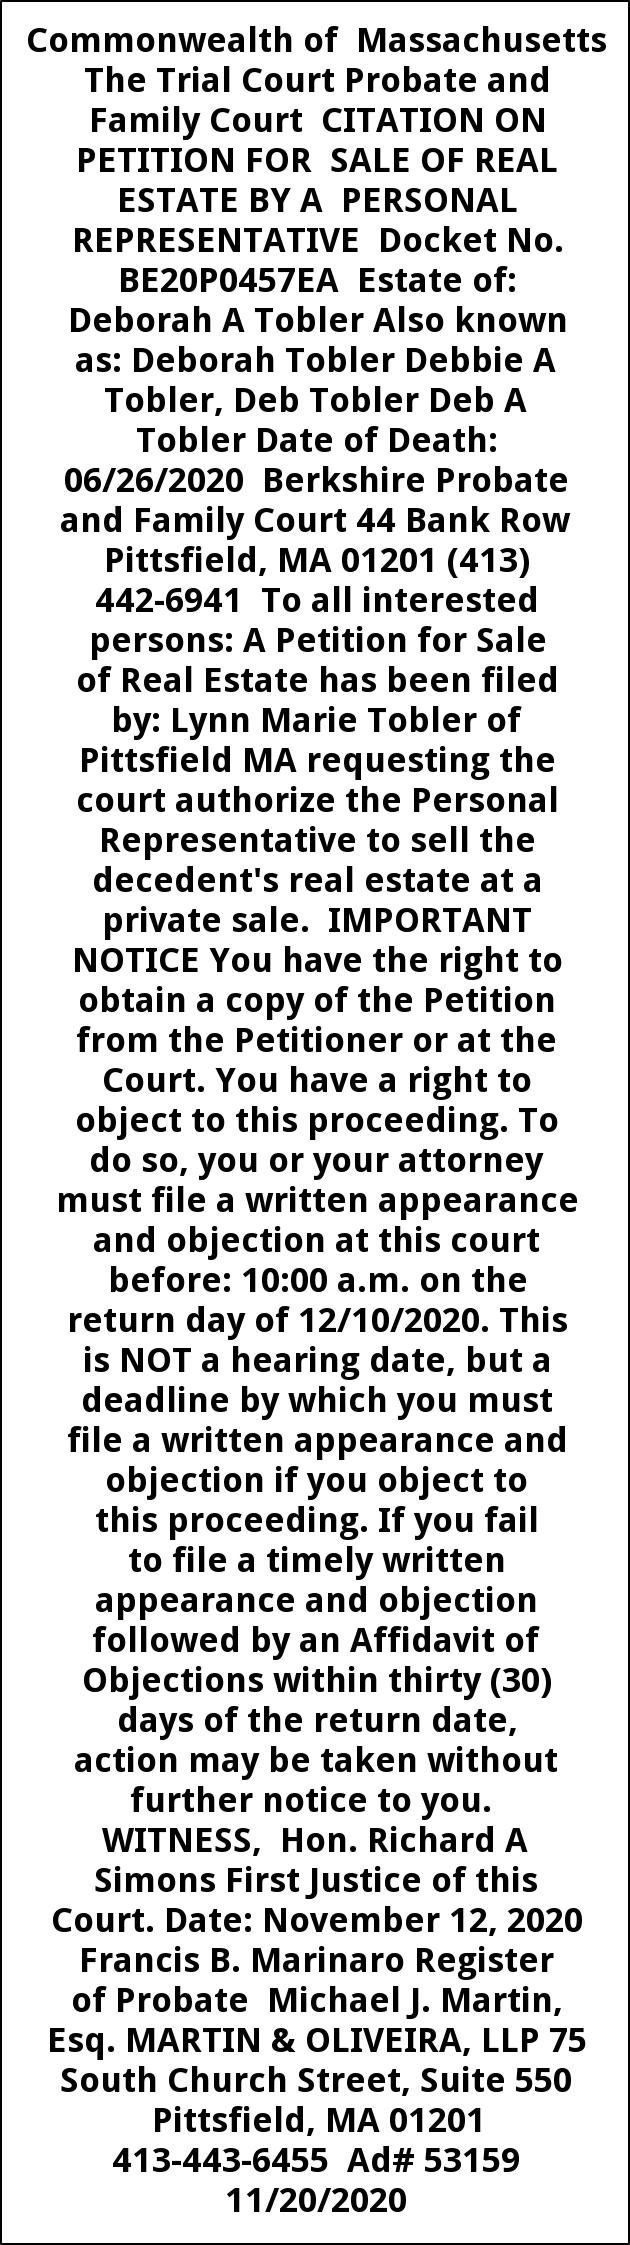 Citation On Petition For Sale Of Real Estate